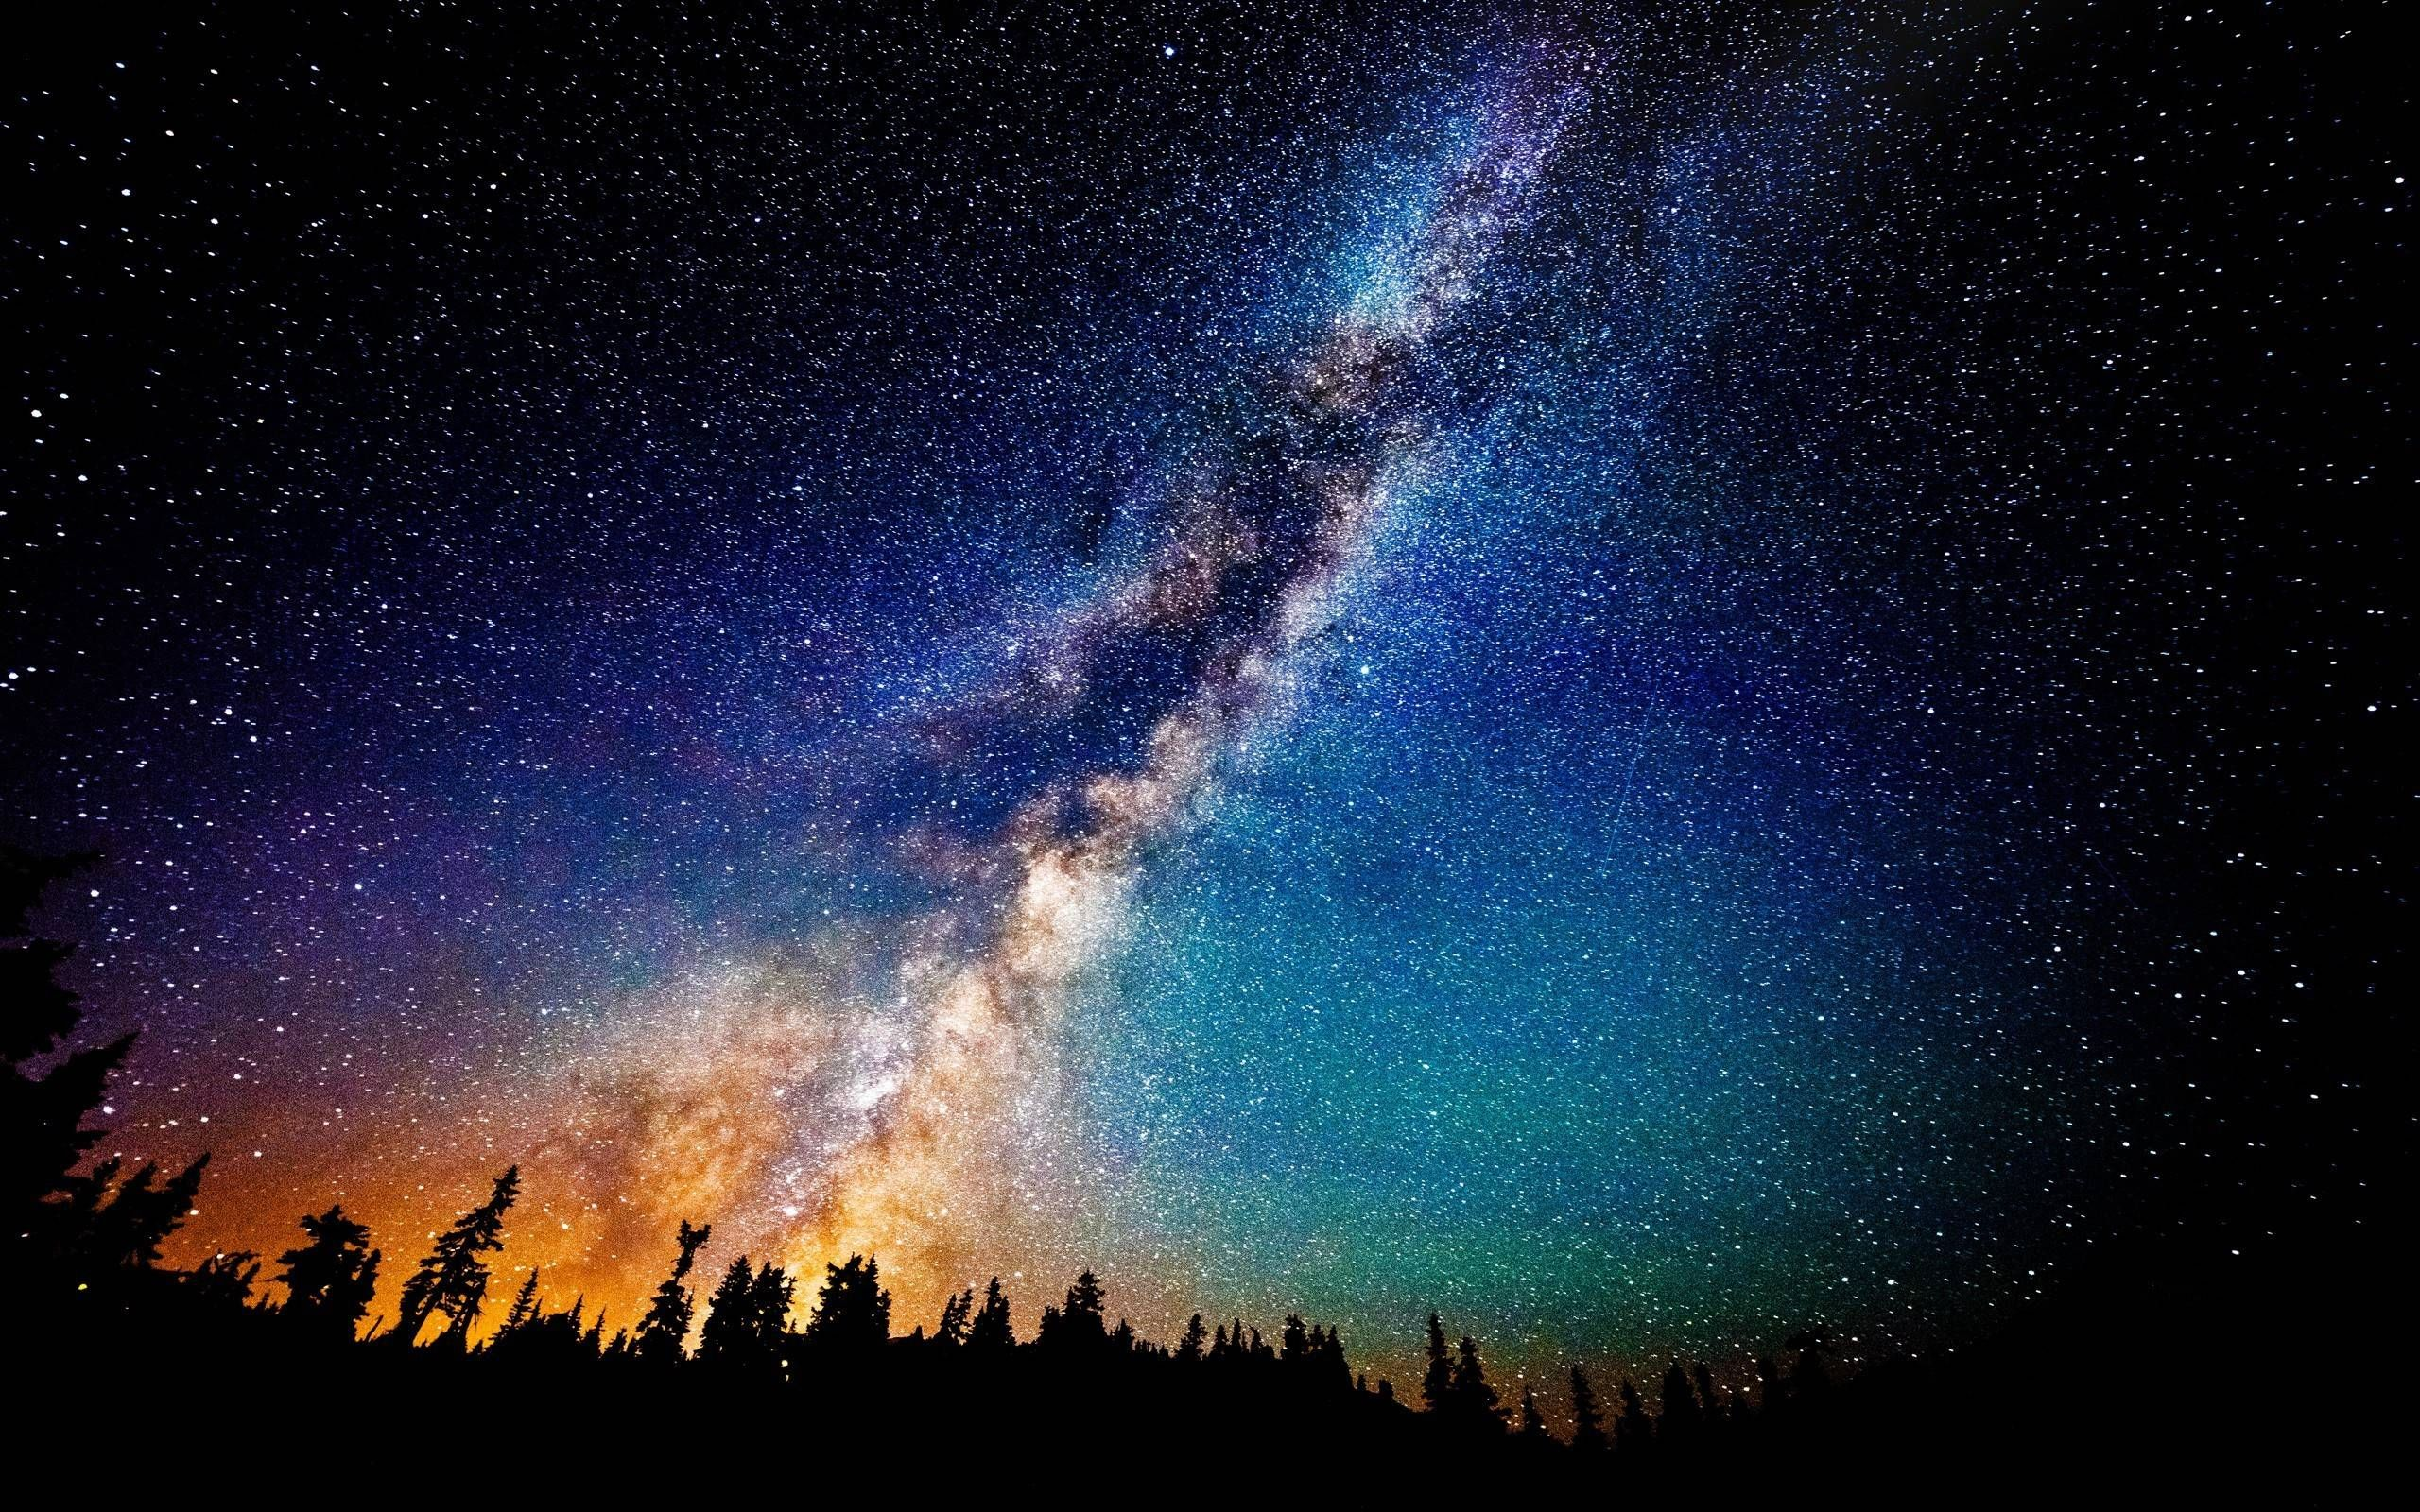 a description of the milky way galaxy Enjoy these fun galaxy facts for kids learn how about all the different types of galaxies in the universe, the milky way galaxy that earth sits in, the local group of galaxies we are part off, how many galaxies there are in the observable universe and much more read on for a range of interesting.